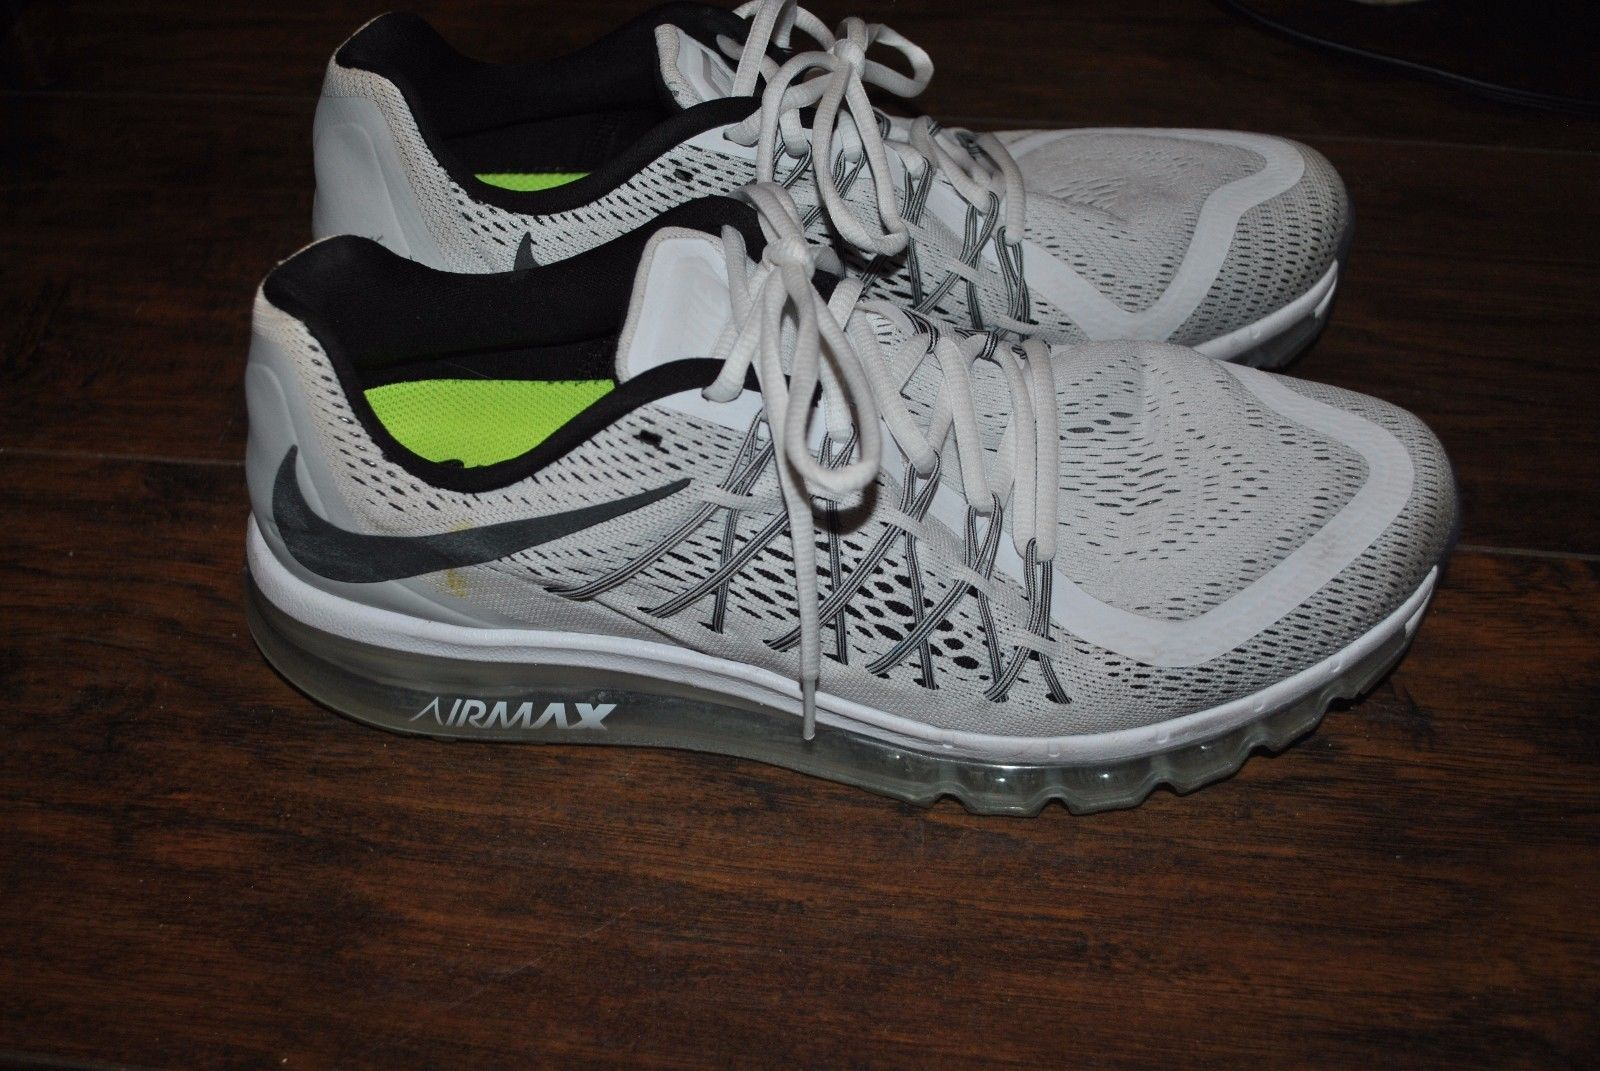 cbbc03dfa2d  Men  Shoes Nike Air Max 2015 Men s Shoes White Black 698902-101 SIZE 11.5   Men  Shoes